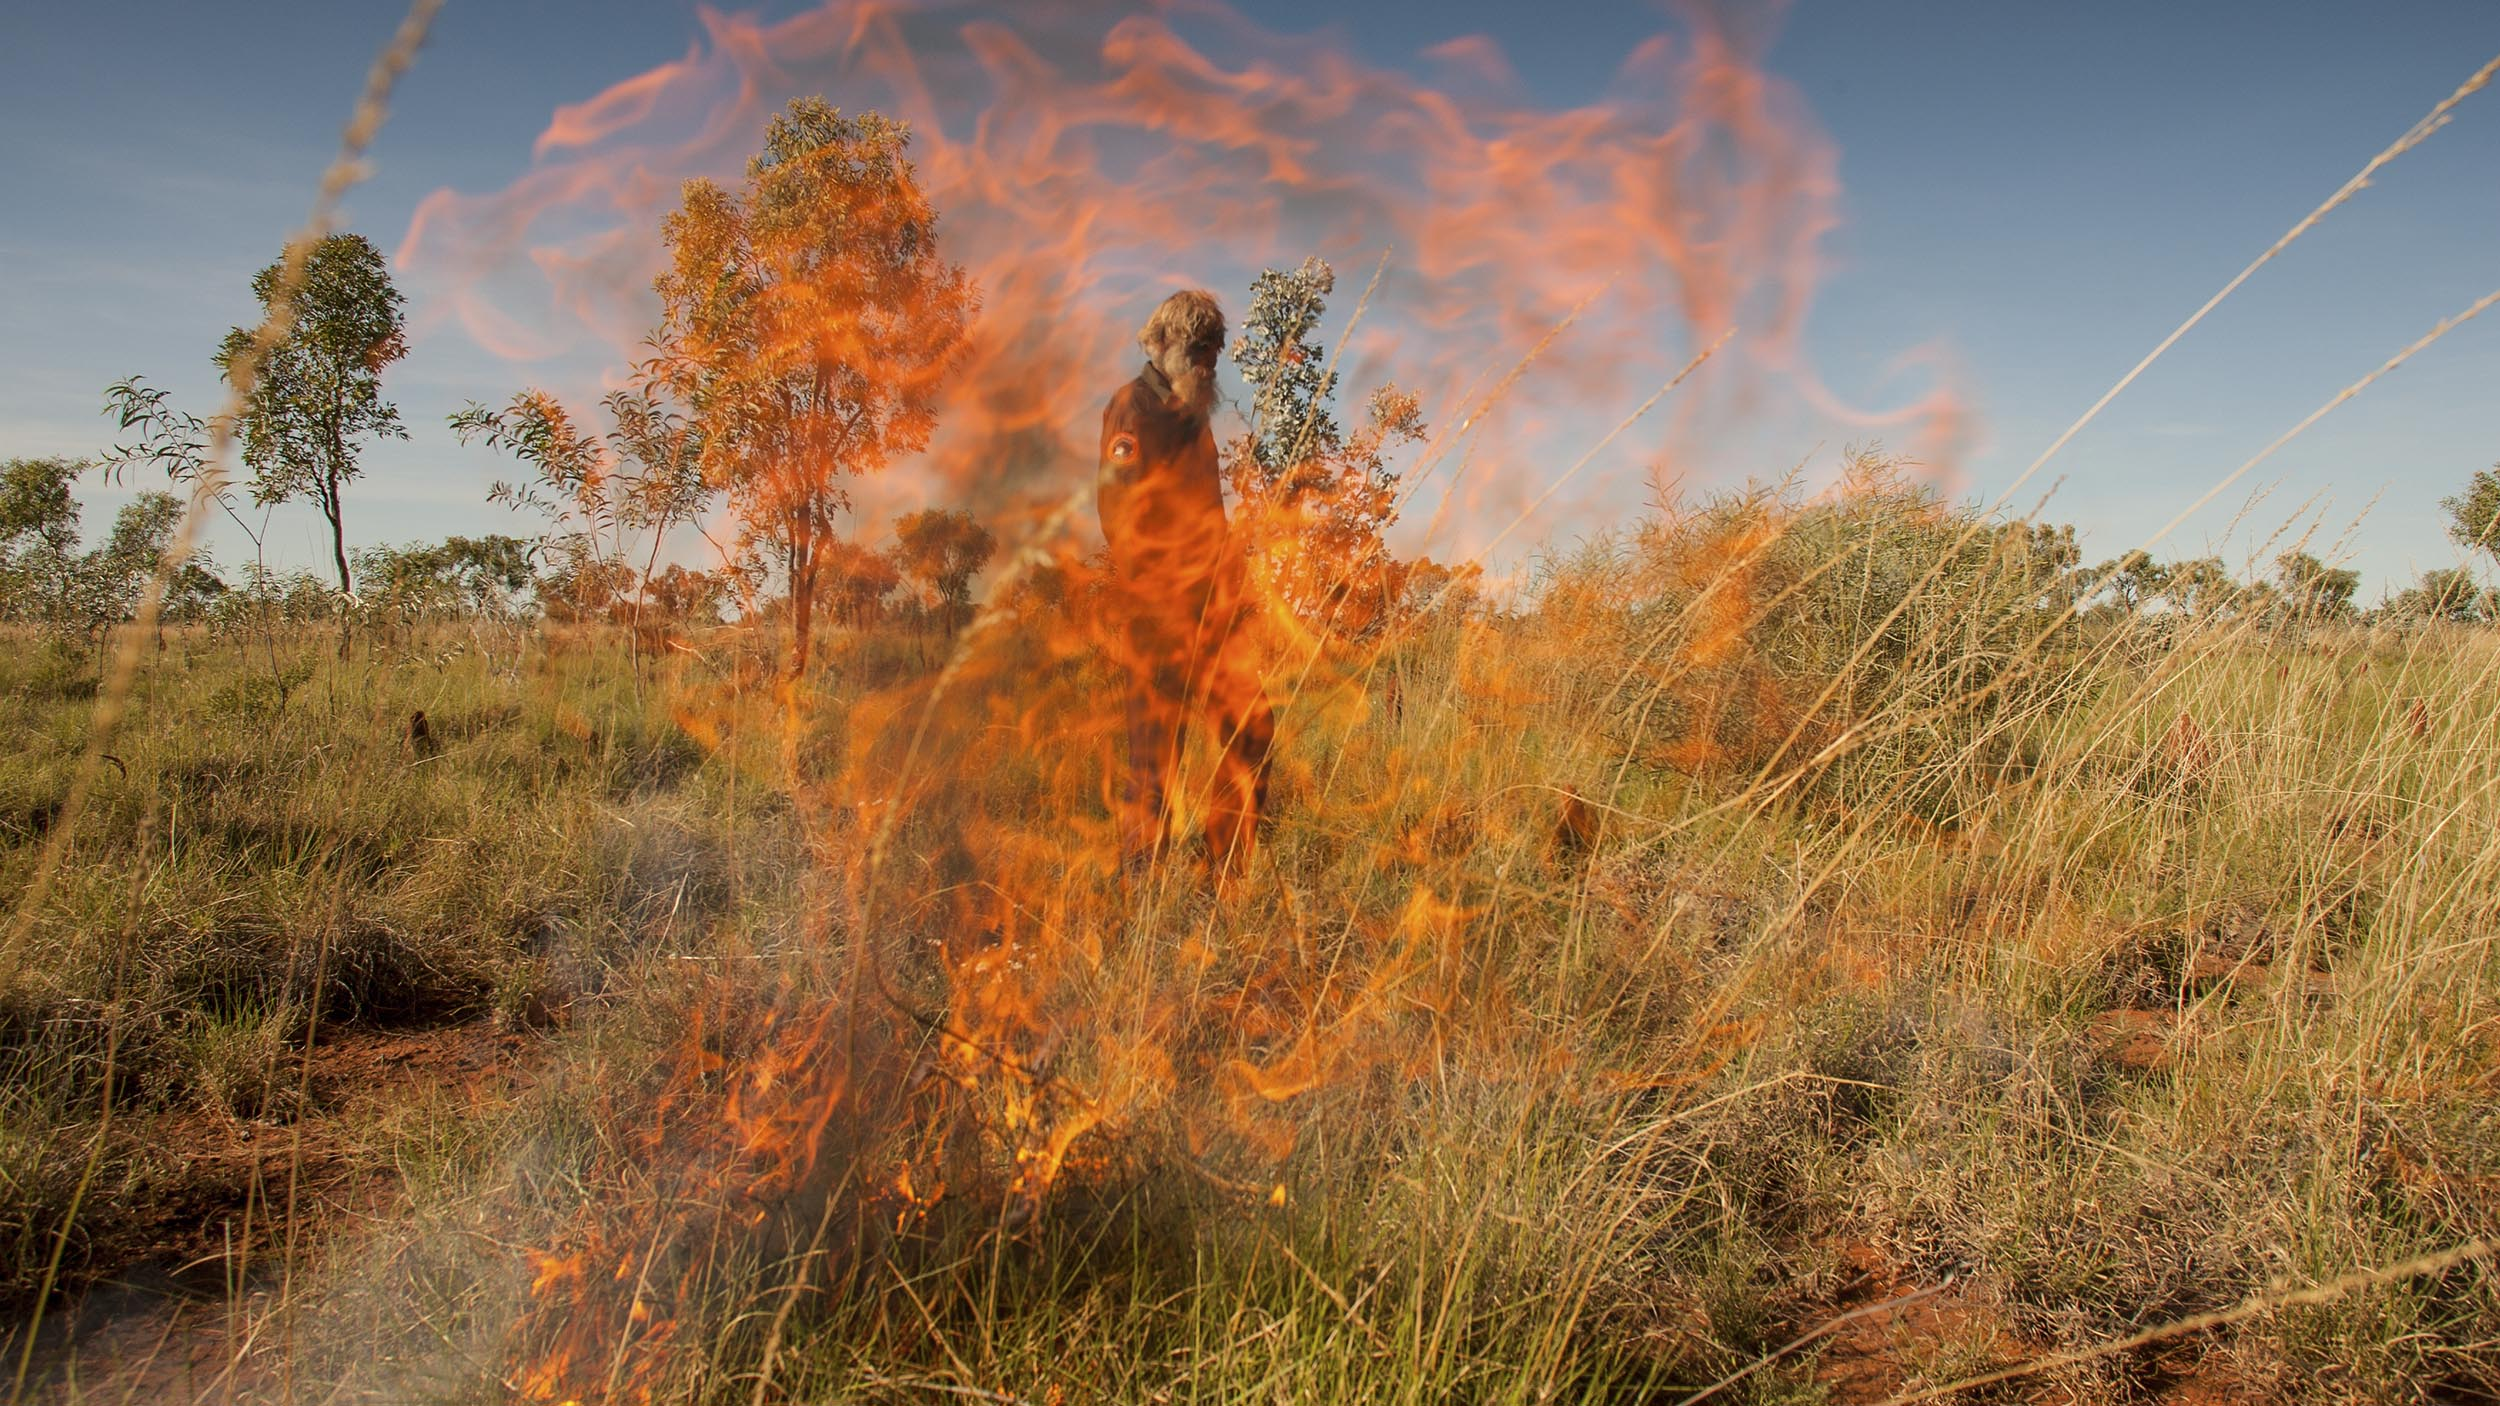 Indigenous Ranger Benny Jabbalari conducts a controlled burn in spinifex country in the Northern Territory's Tanami Desert. The Tanami comes under two Indigenous Protected Areas, with rangers working to manage threats such as wildfires, weeds and feral animals.